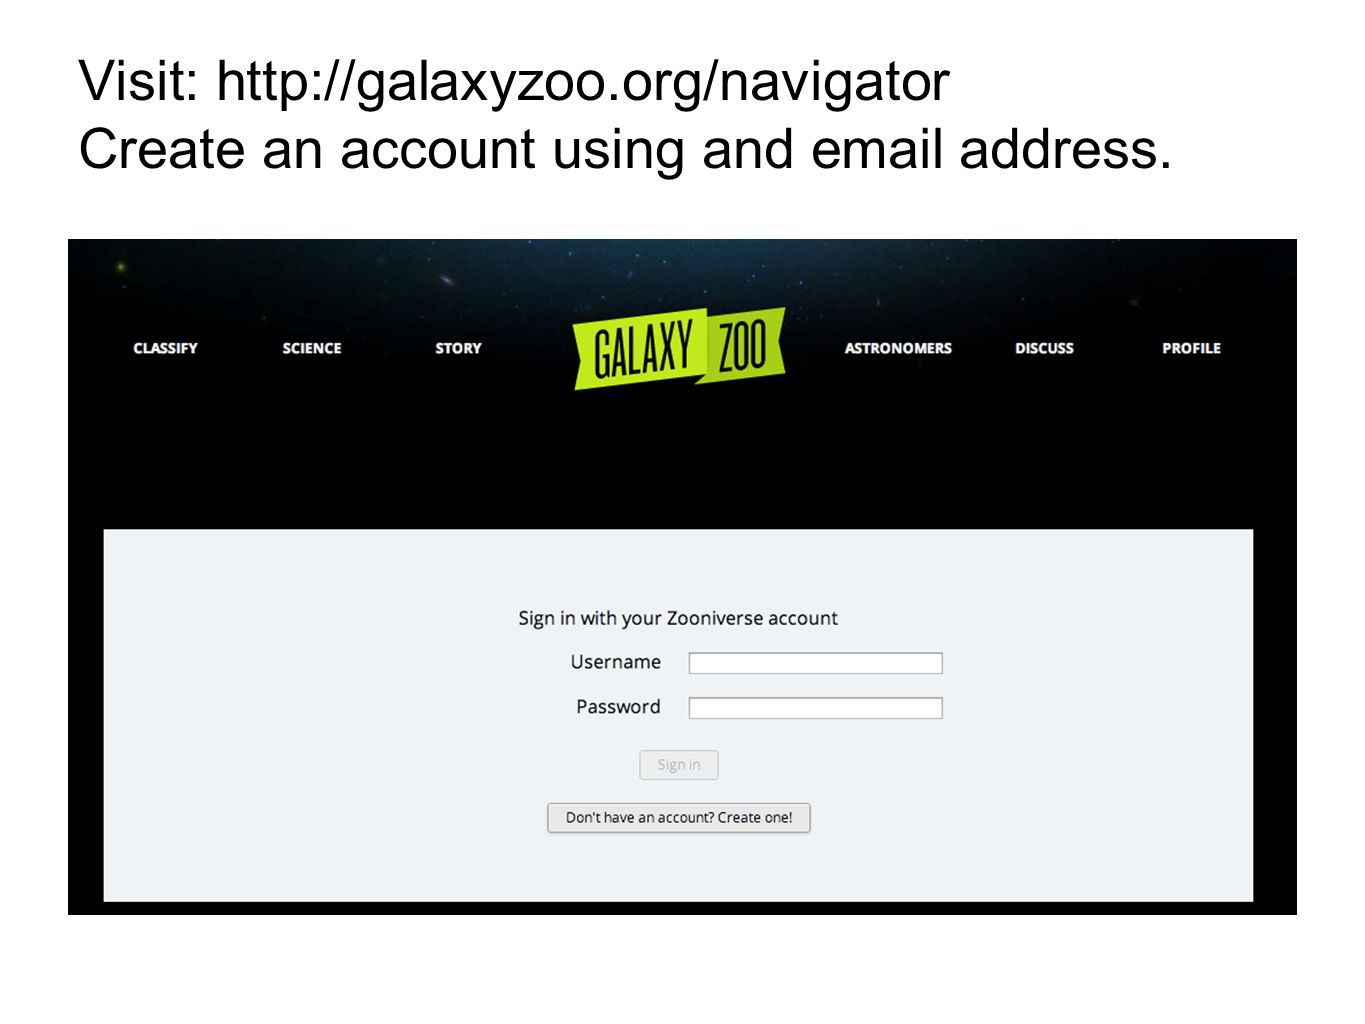 Visit: http://galaxyzoo.org/navigator Create an account using and email address.